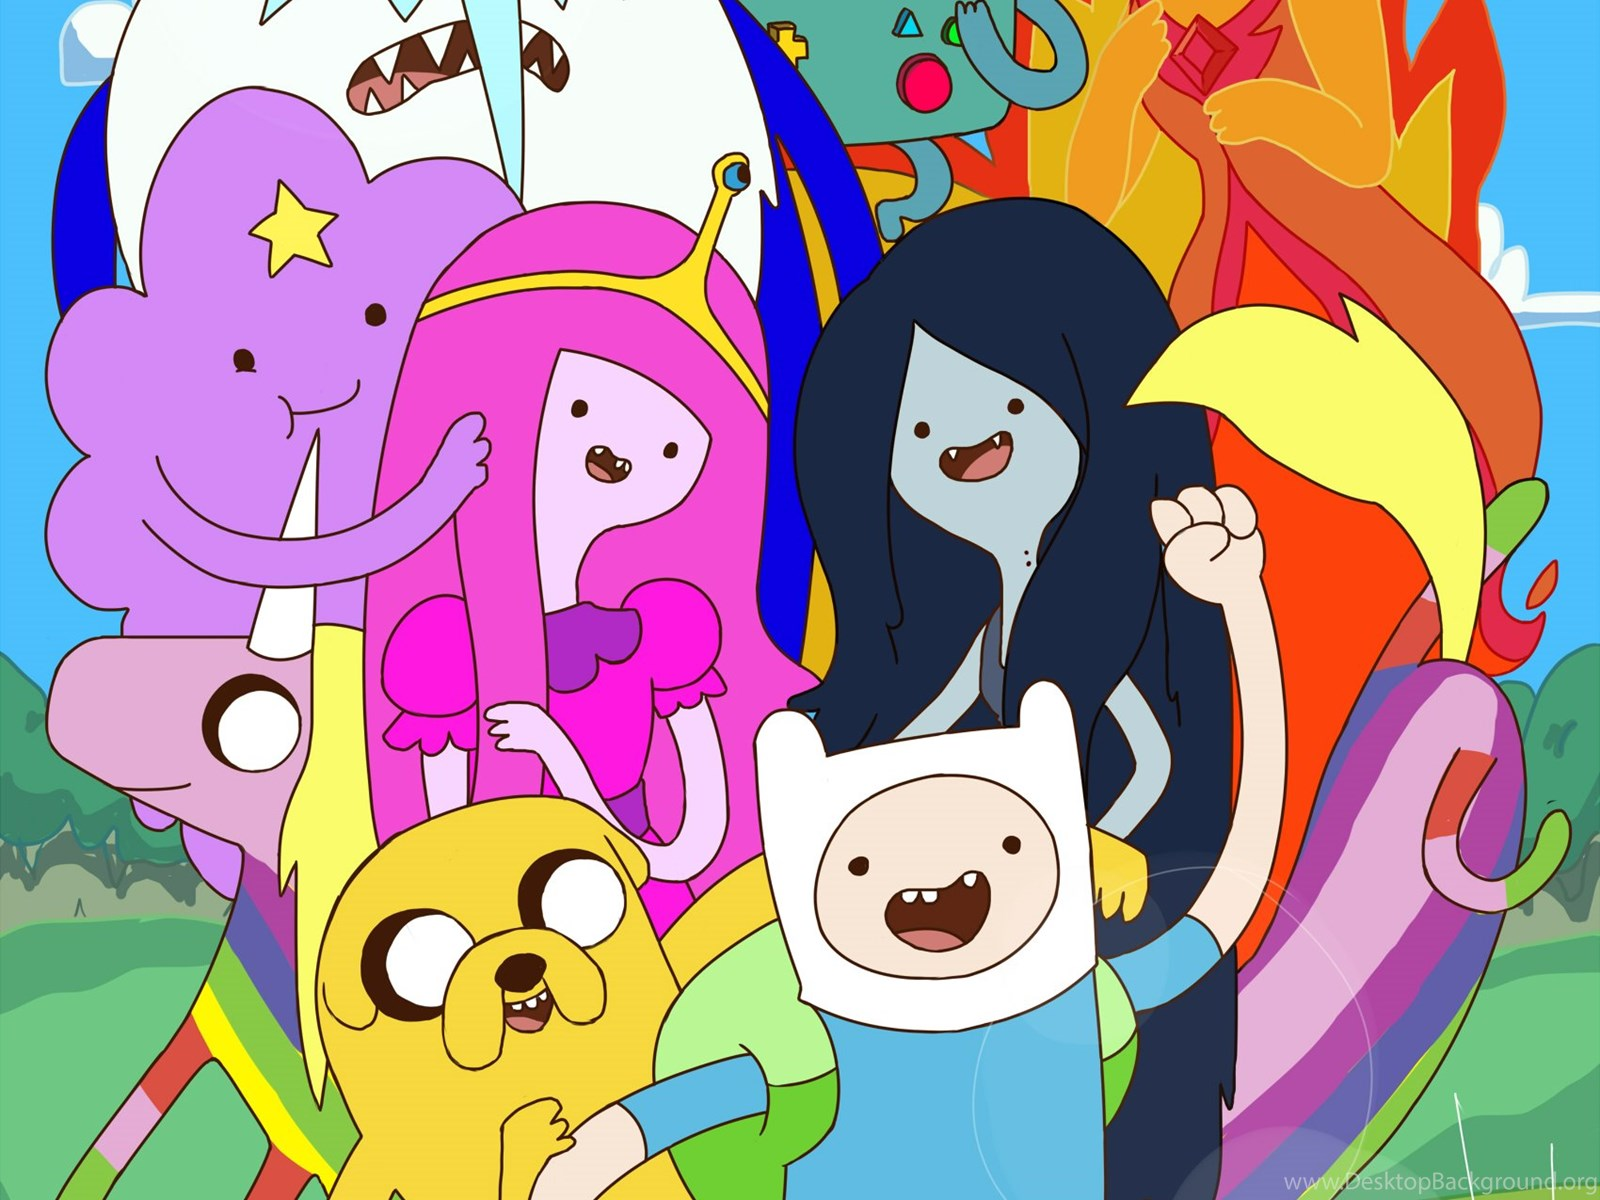 adventure time wallpapers download - photo #47